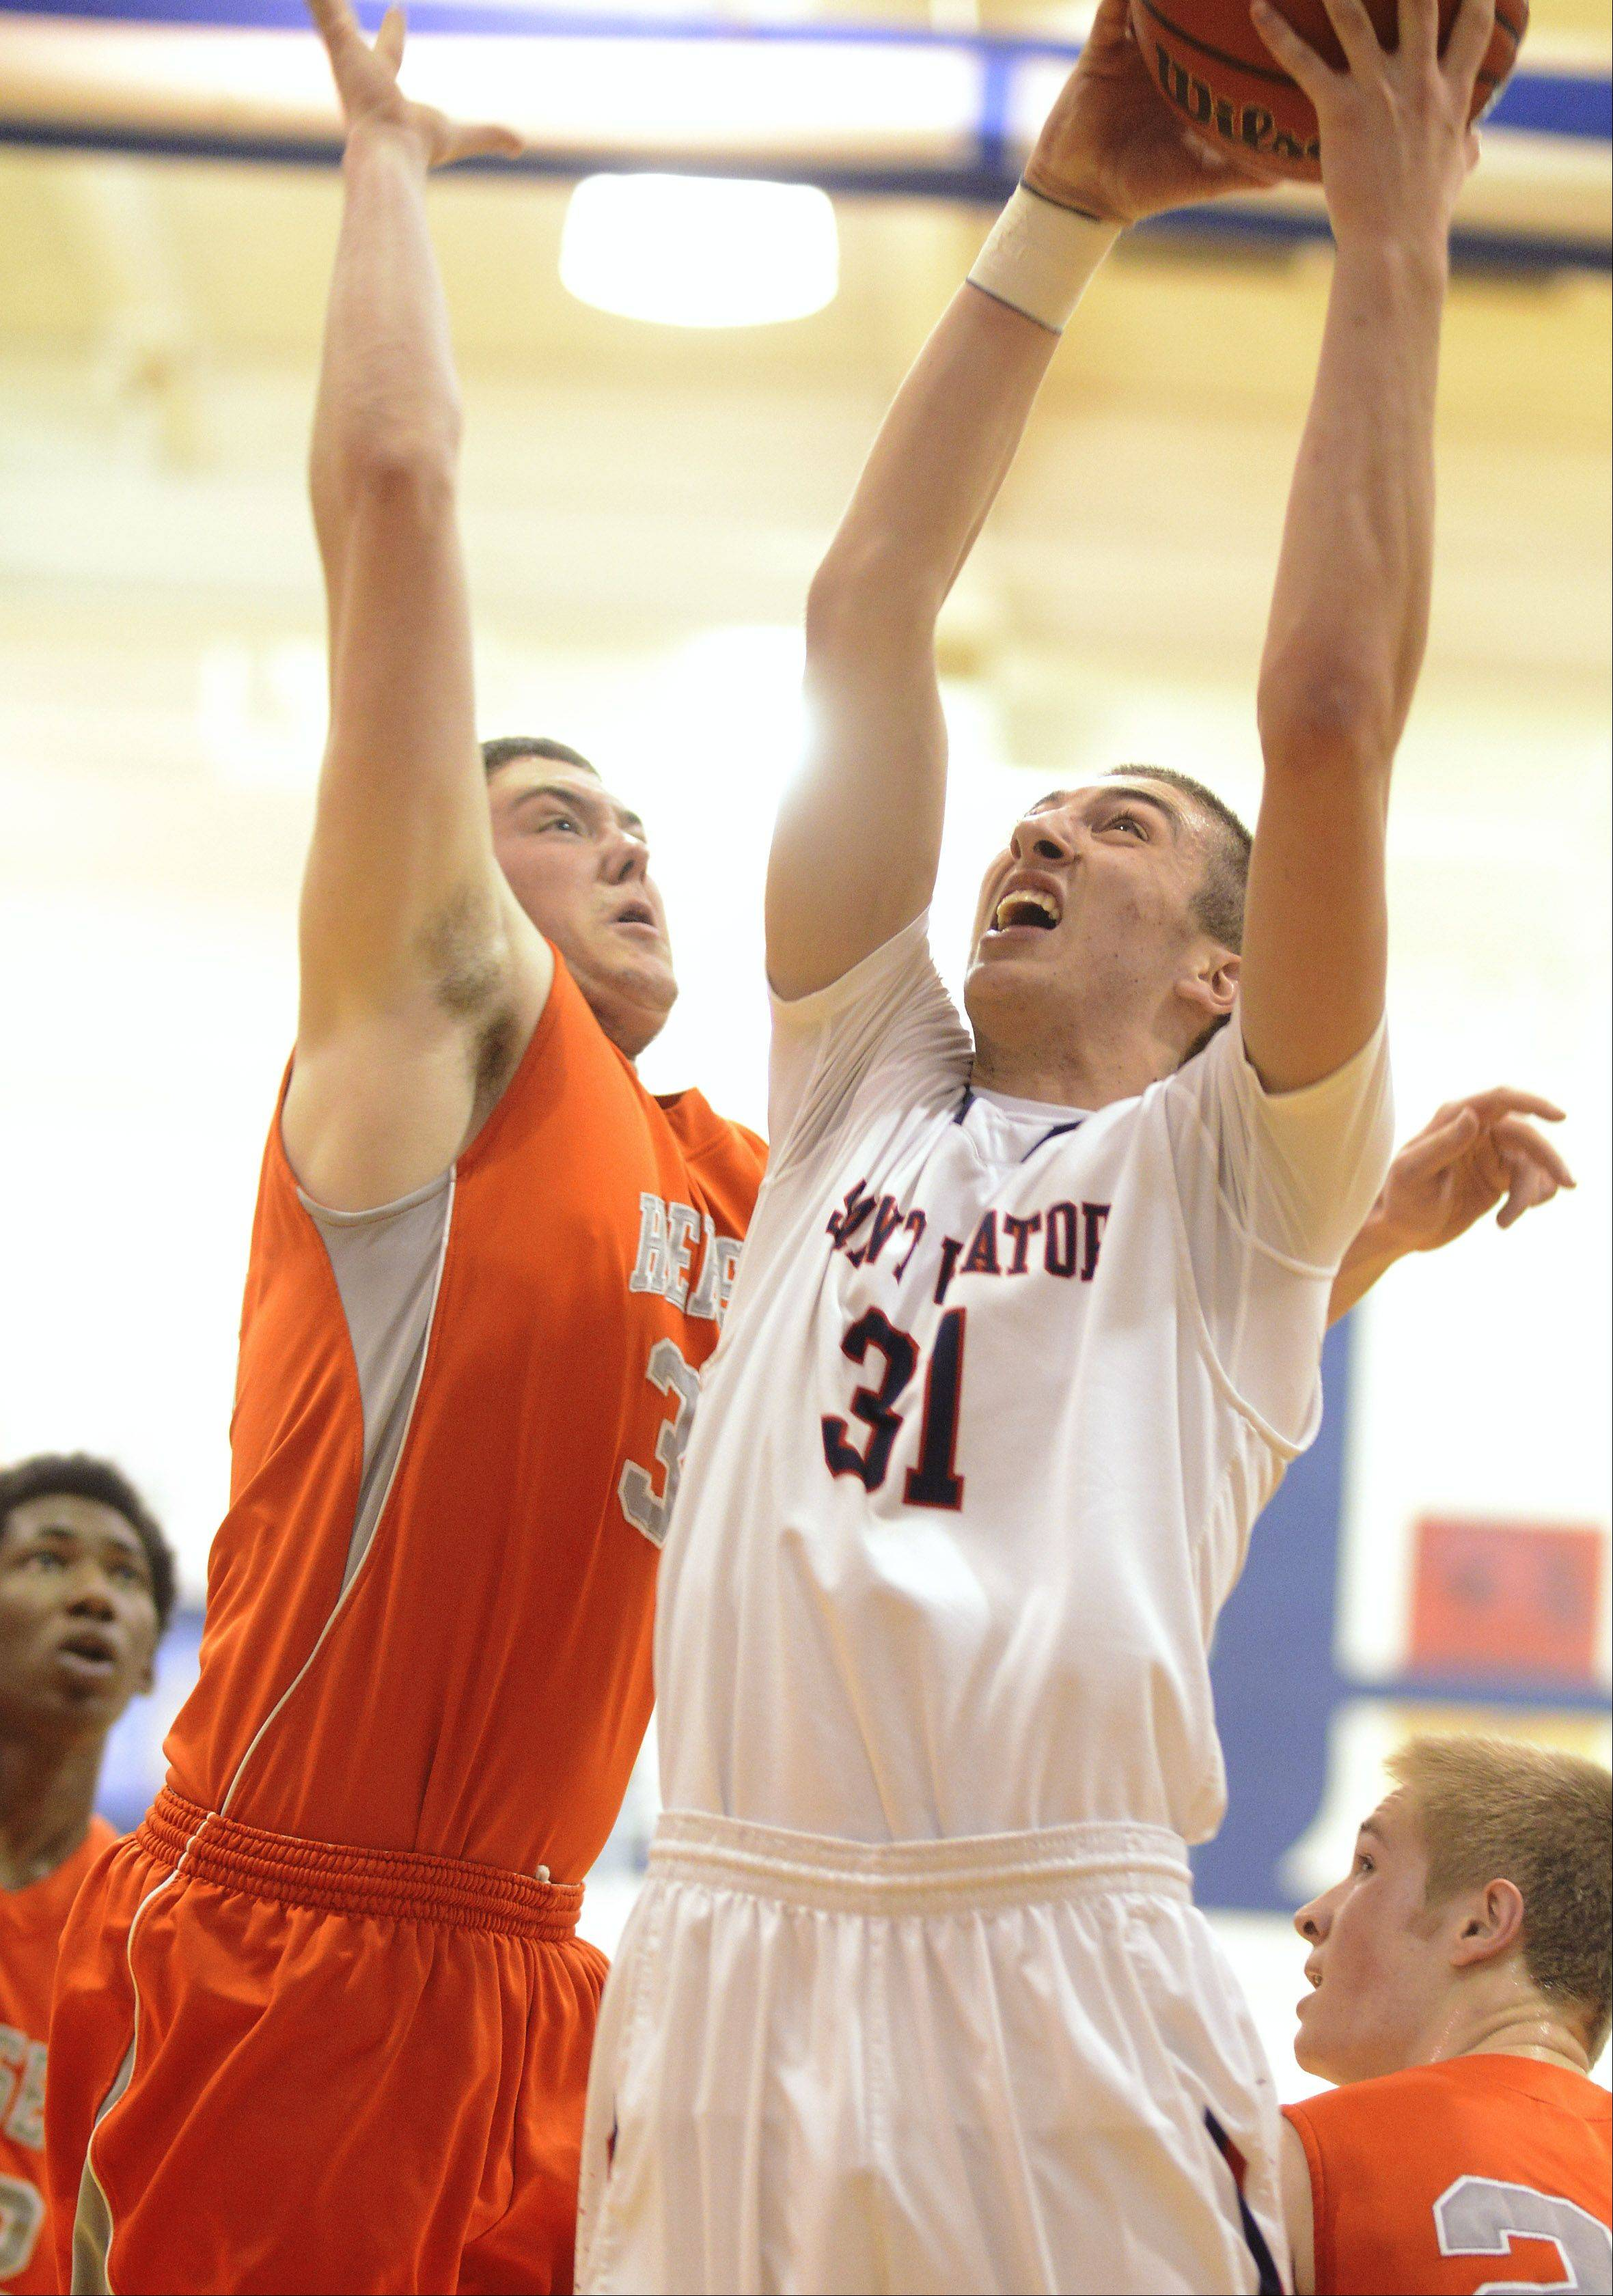 St. Viator's Sal Cannella, right, makes a strong move to the basket against hersey defender Michael Messer during Wednesday's game in Cahill Gymnasium.